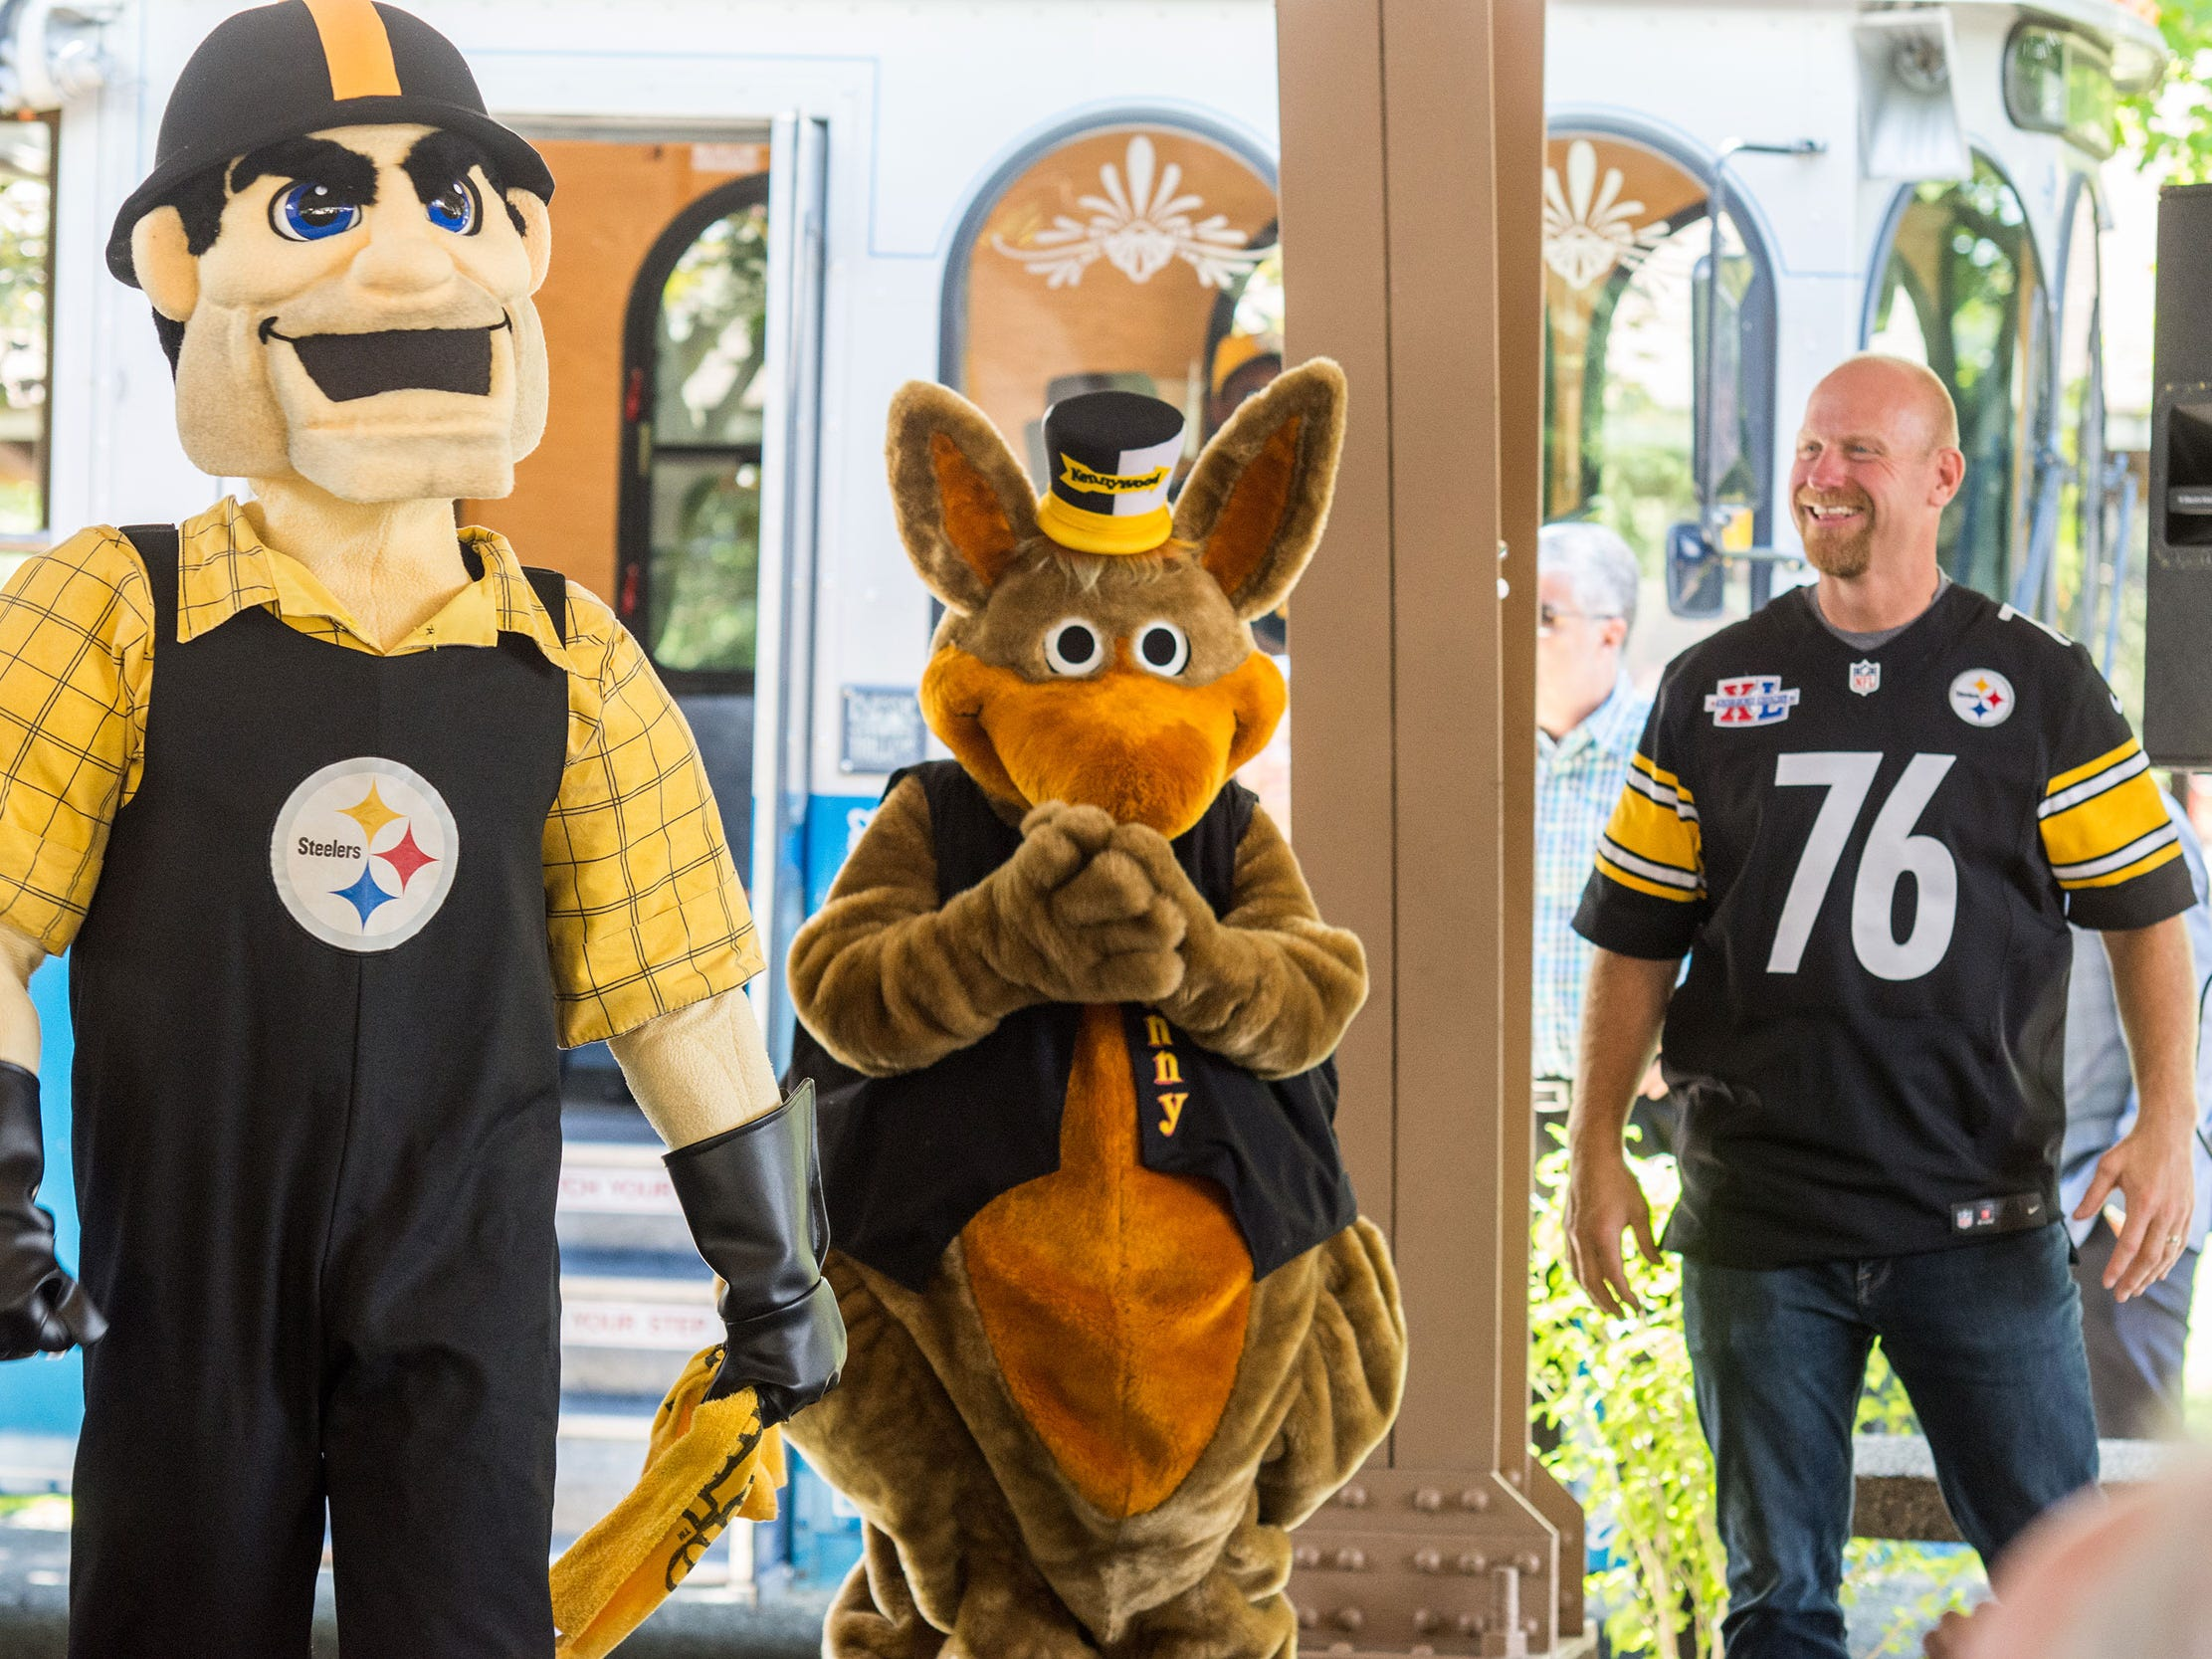 Steelers mascot Steely McBeam, Kennywood mascot Kenny Kangaroo and former Steeler Chris Hoke appear at the press conference to announce Steelers Country.